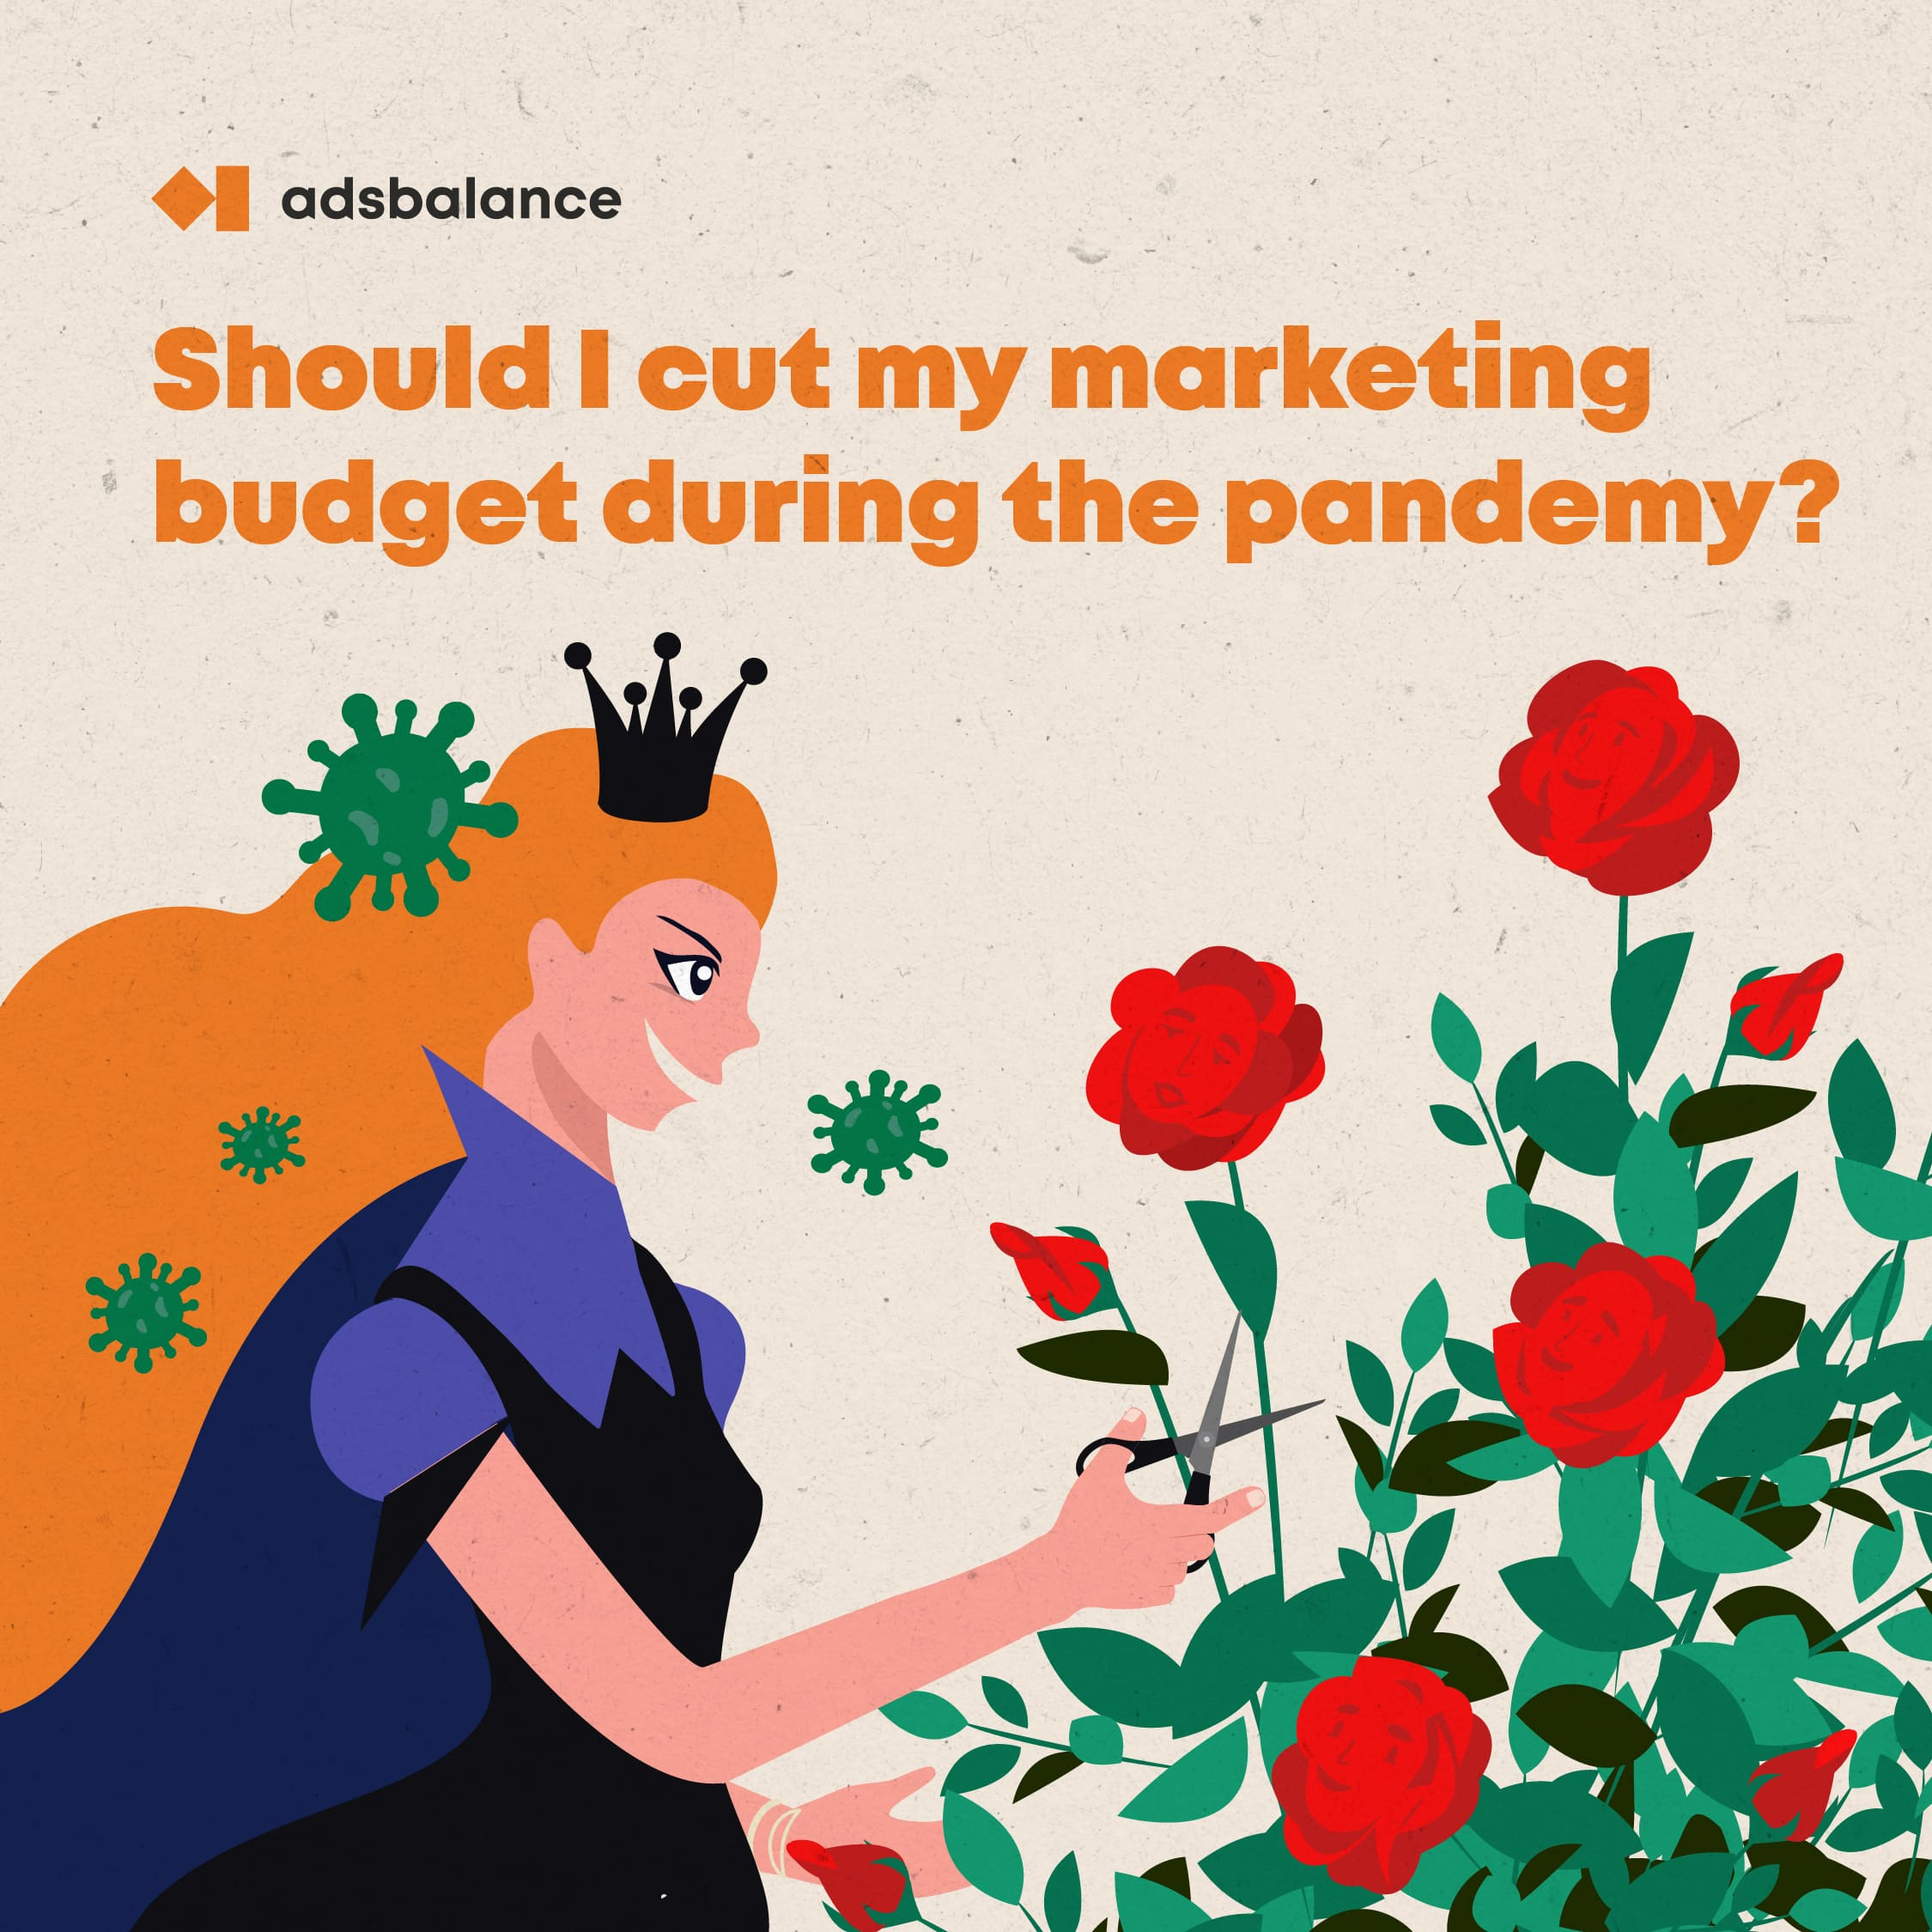 Should I cut my marketing budget during the COVID-19 pandemy?